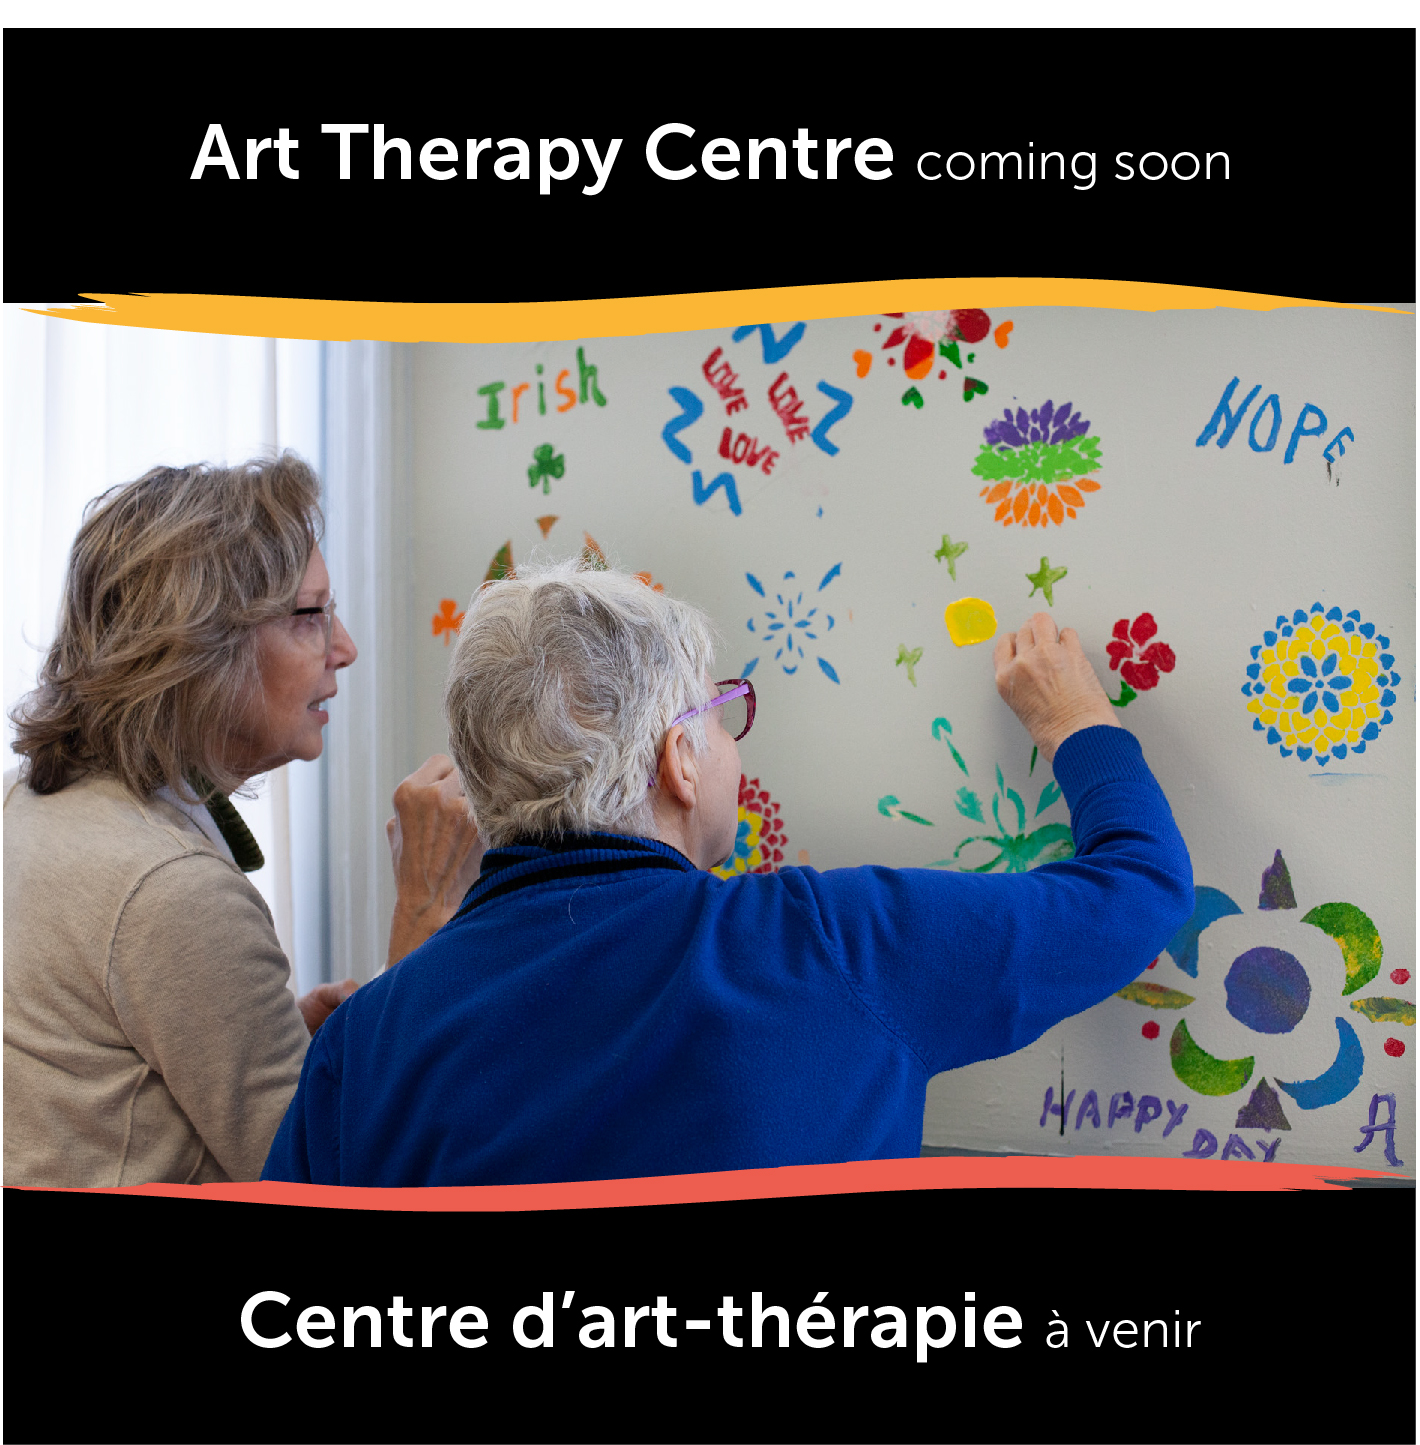 Annonucing Our New Art Therapy Centre